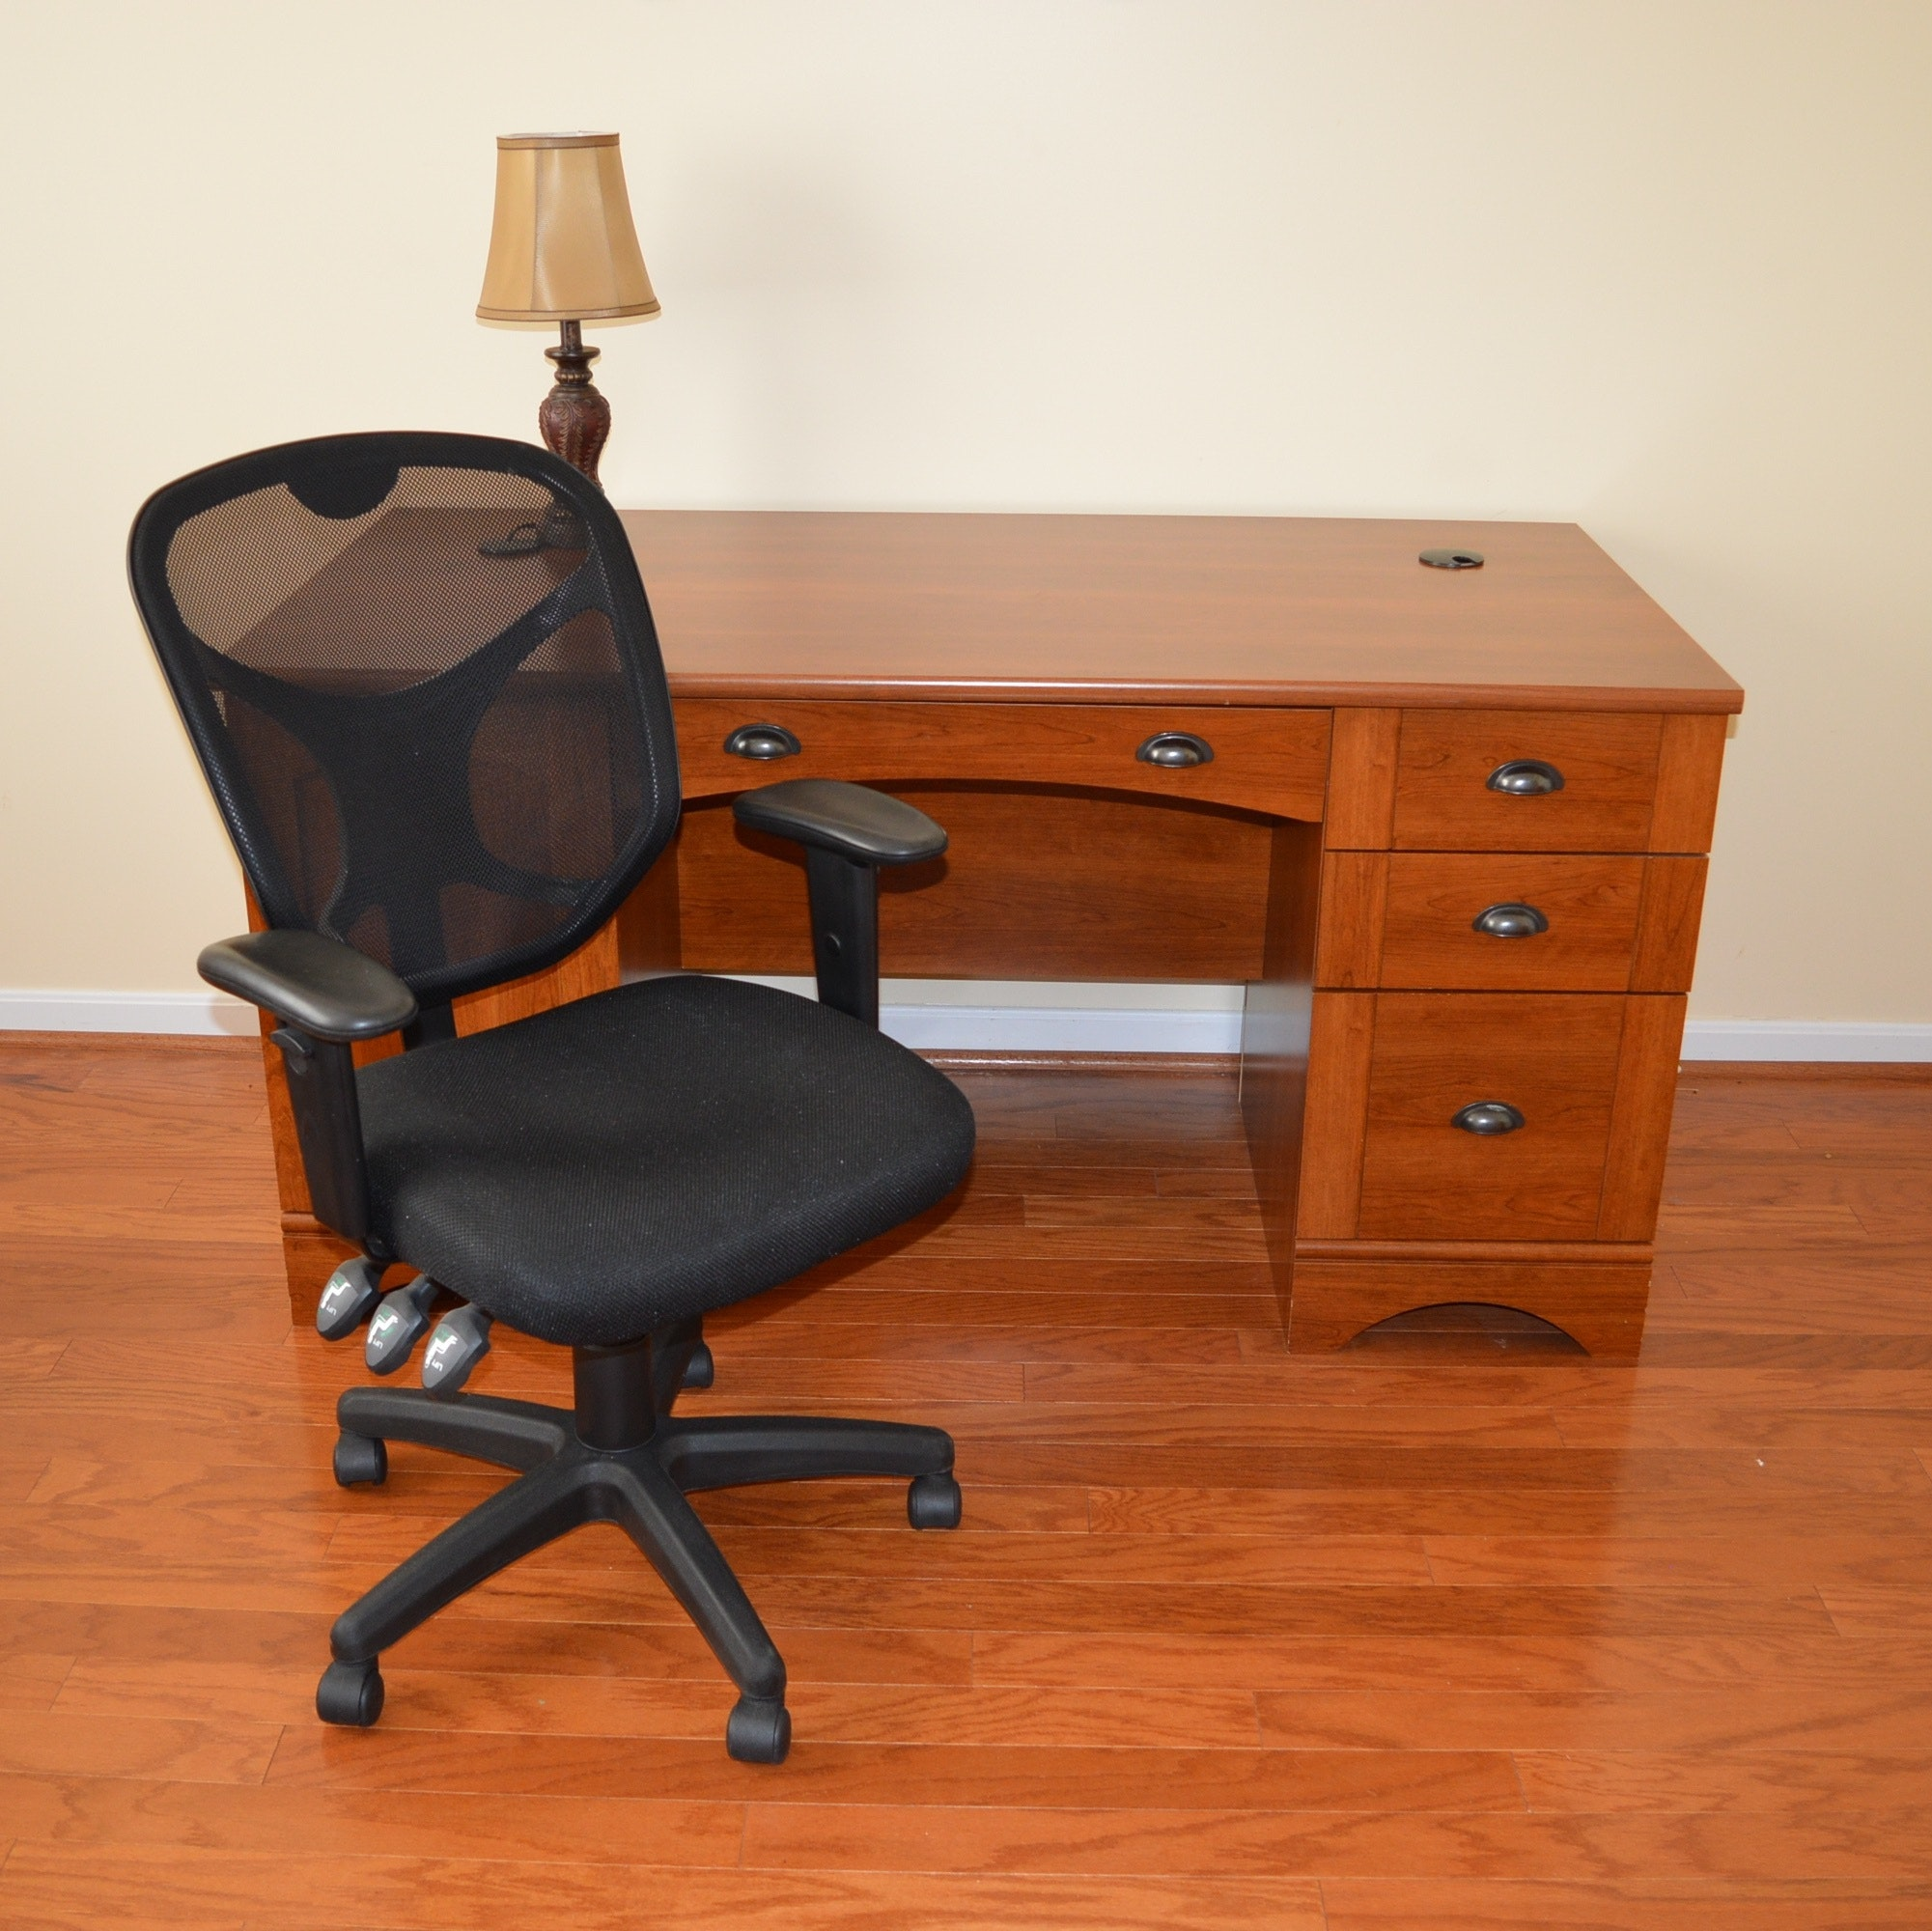 Mission-Style Desk, Office Chair, and Accent Lamp